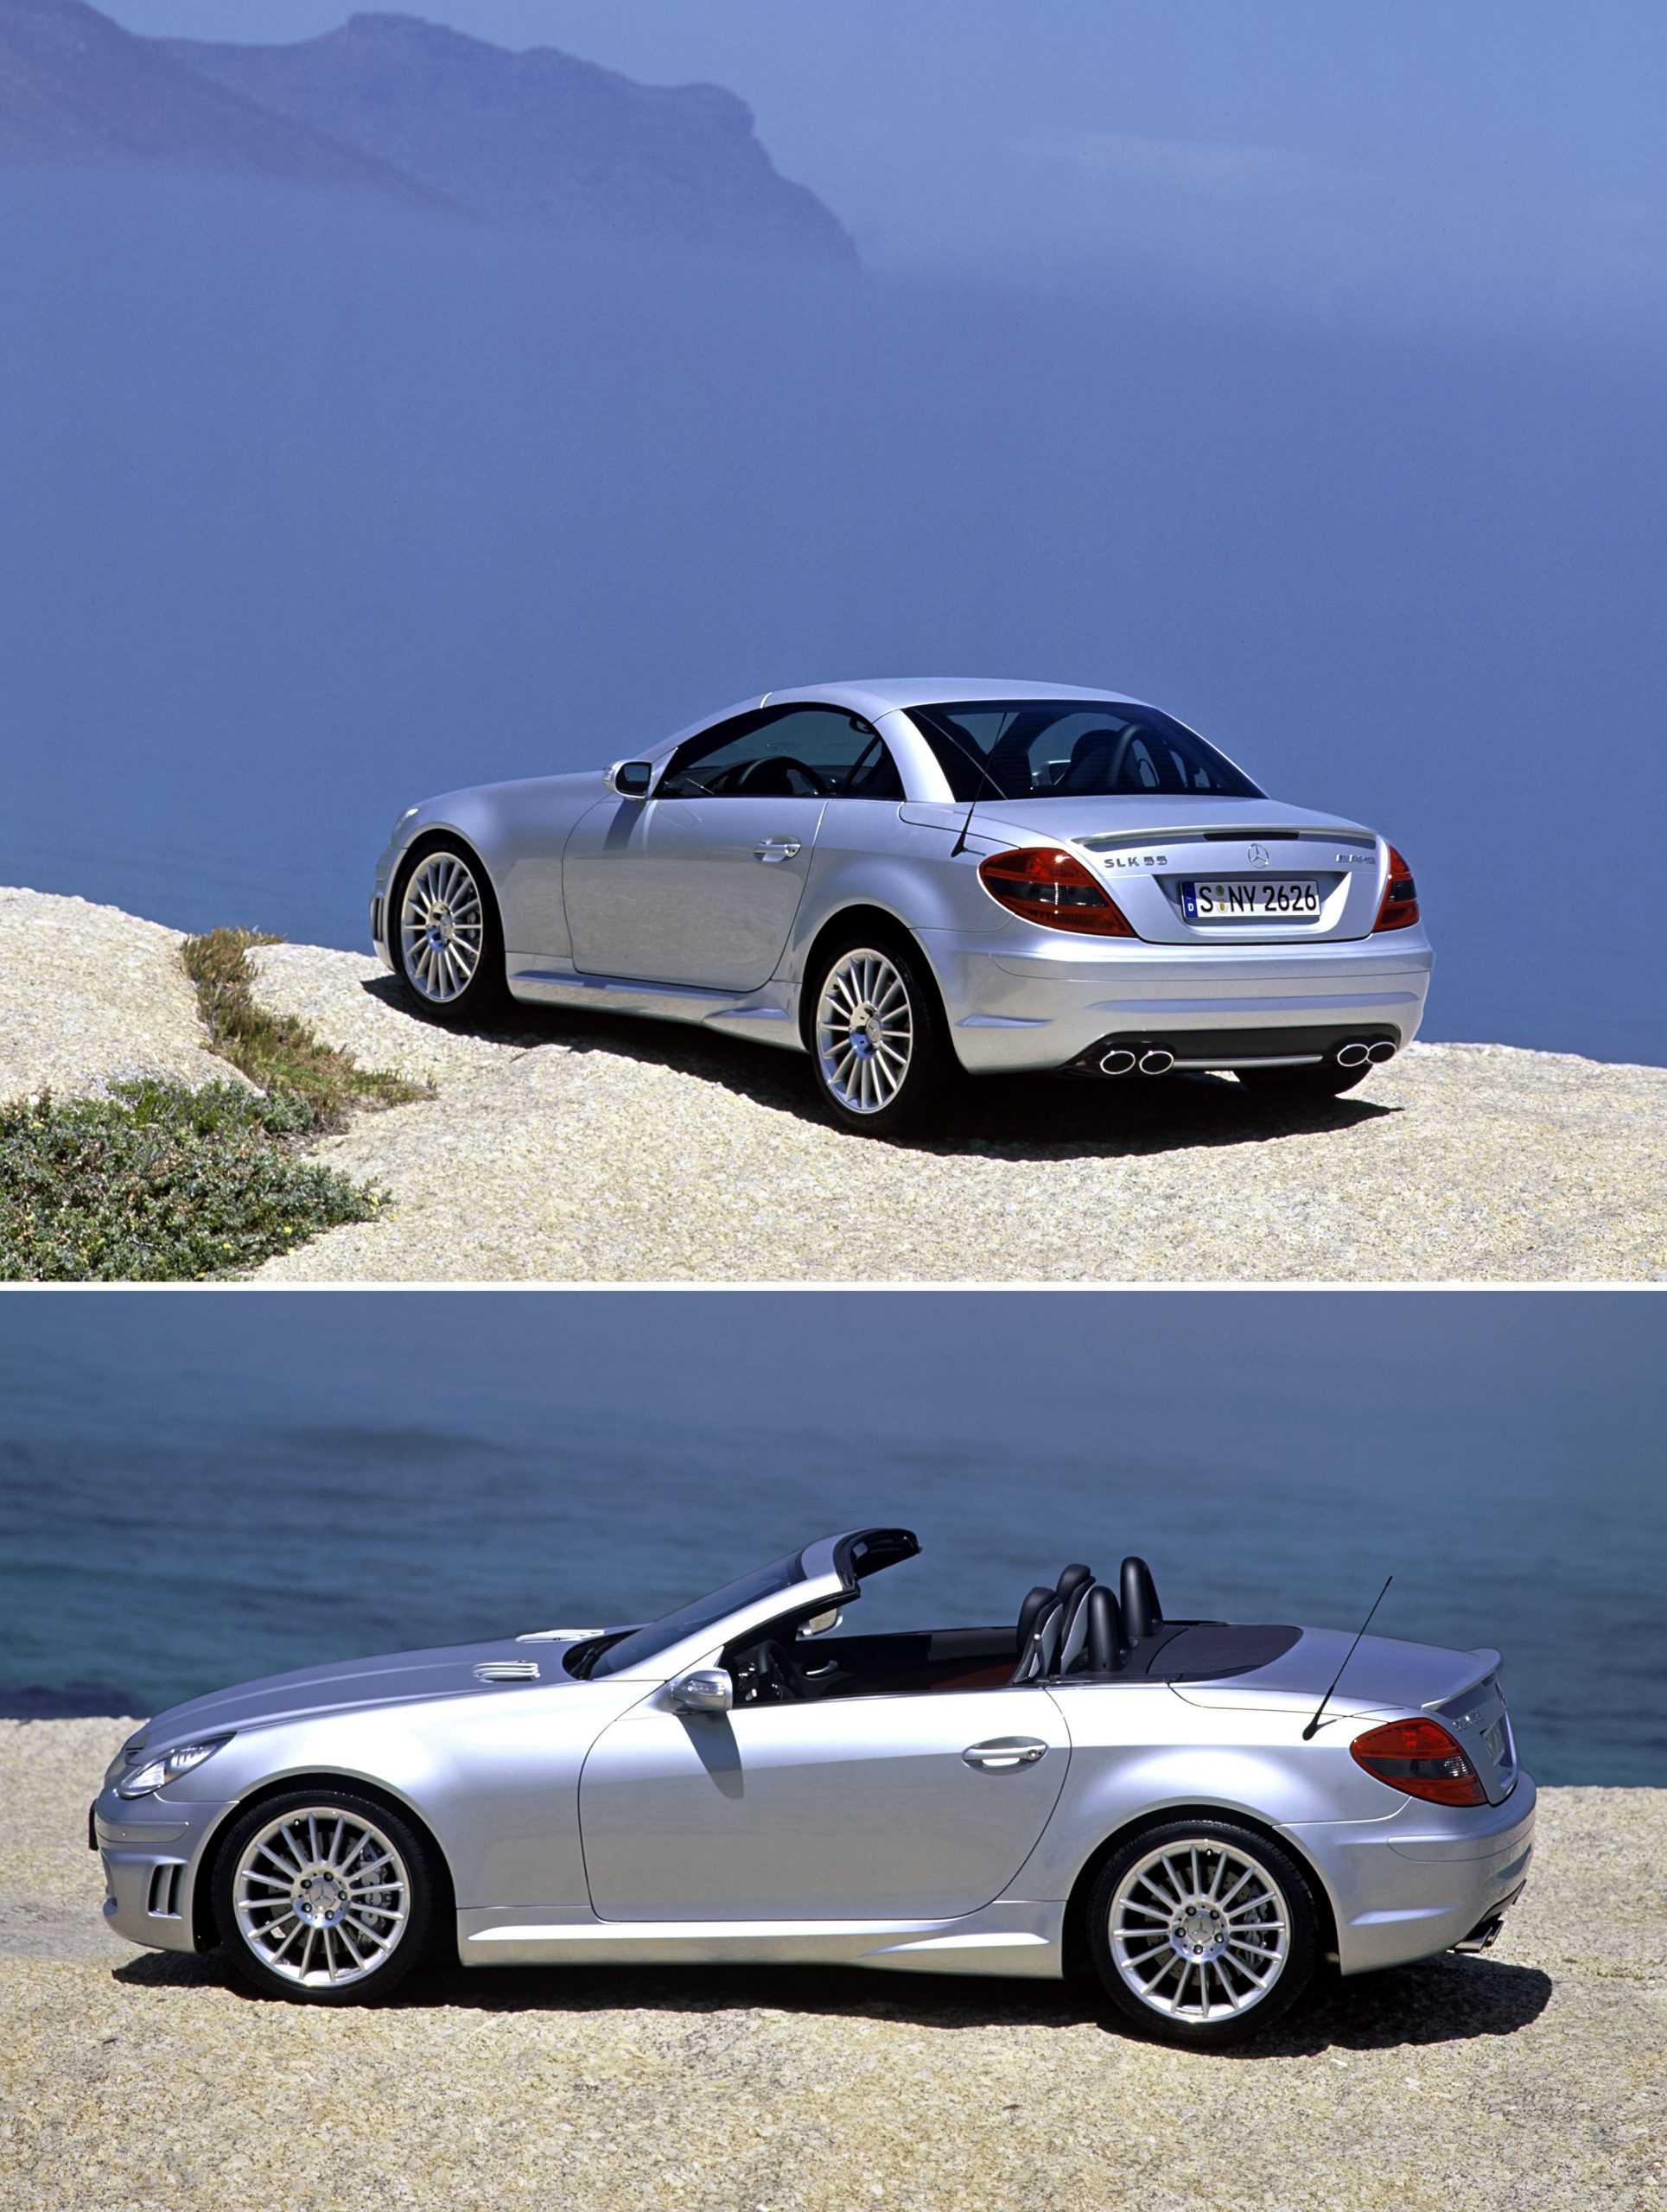 A silver Mercedes-Benz SLK55 AMG with the top open, shot in profile by the seaside